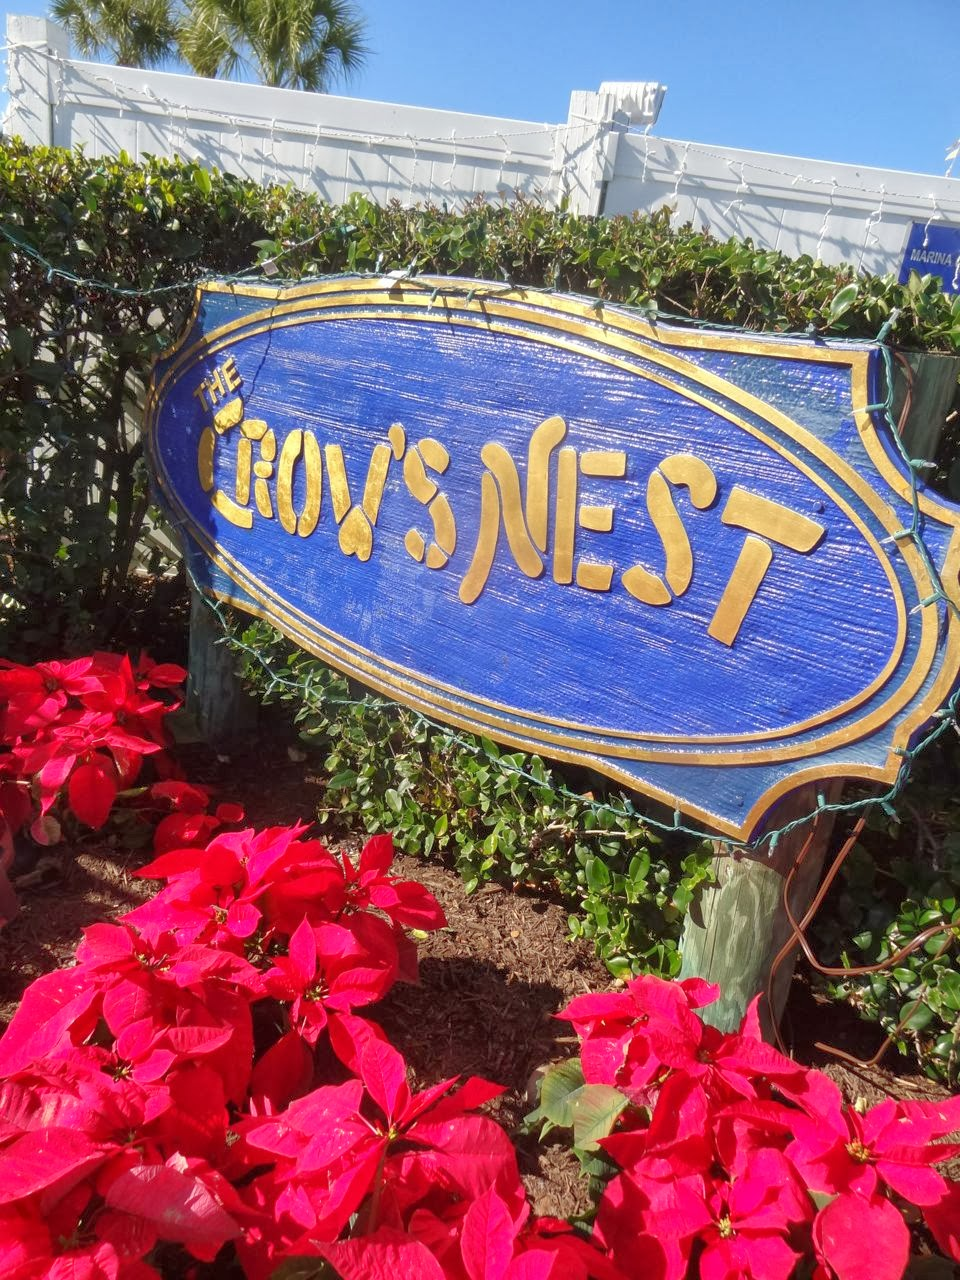 Scrumpdillyicious Venice and The Crows Nest Old Florida